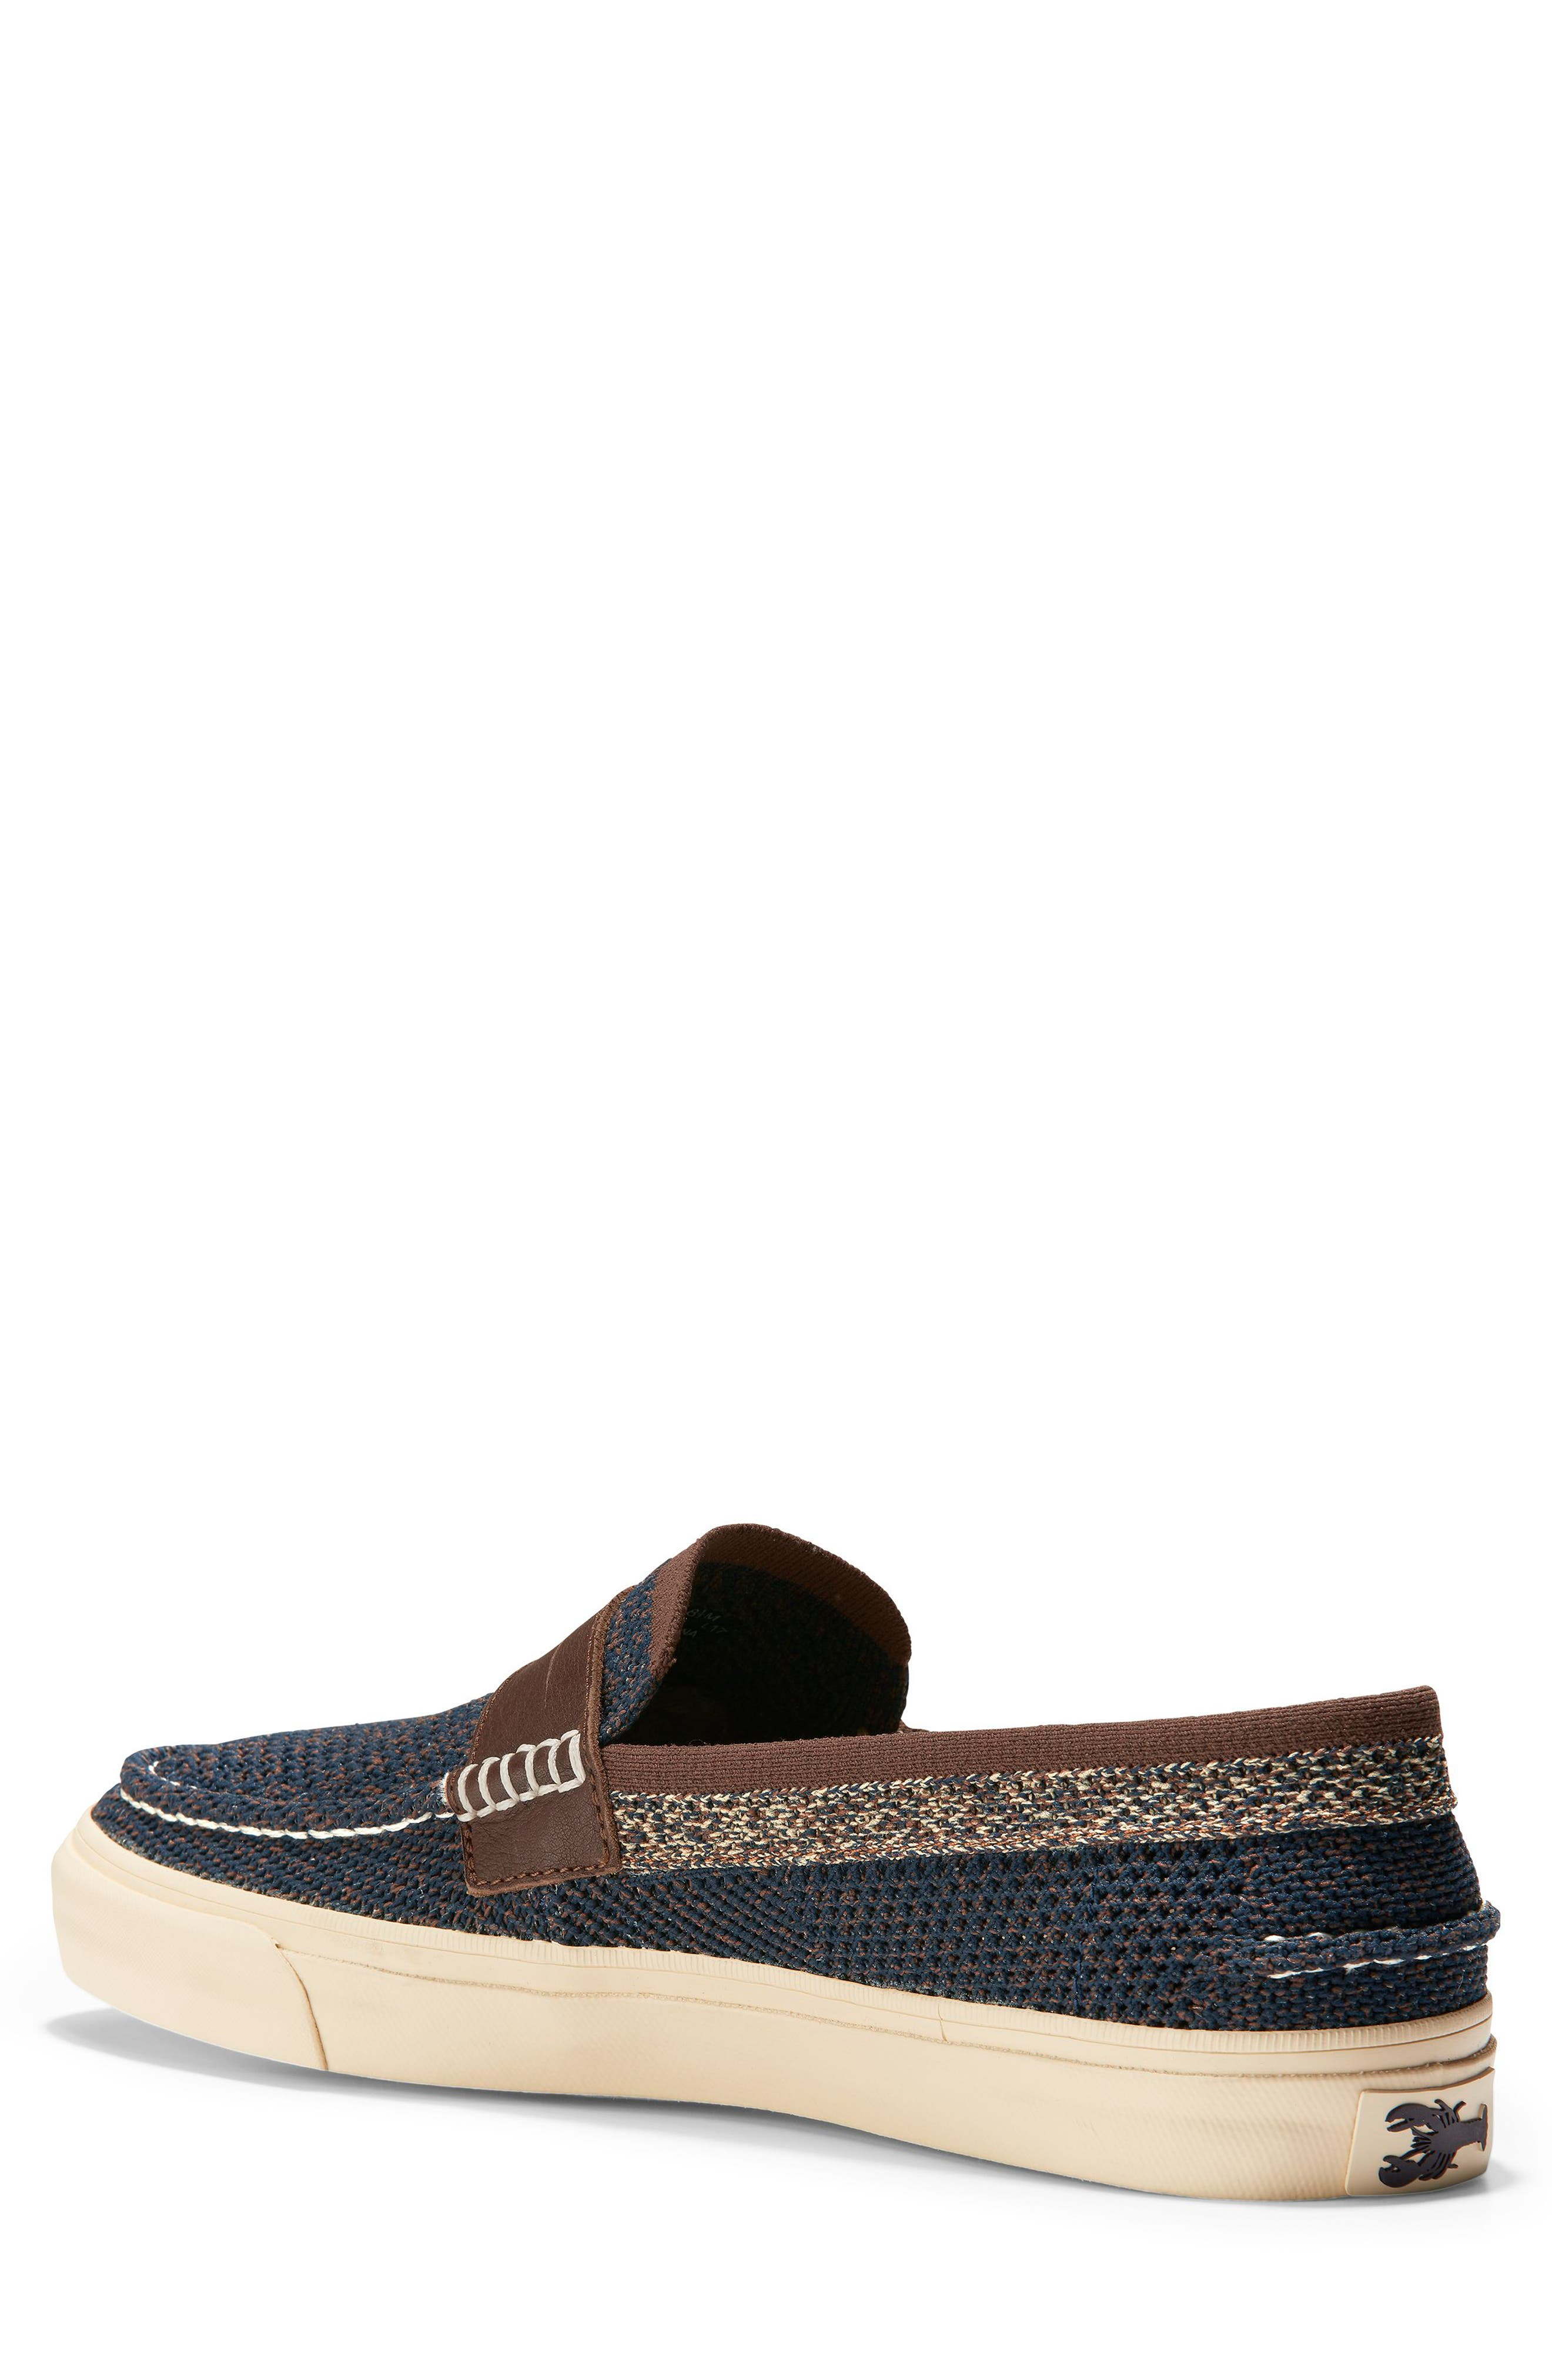 Pinch Weekend LX Penny Loafer,                             Alternate thumbnail 20, color,